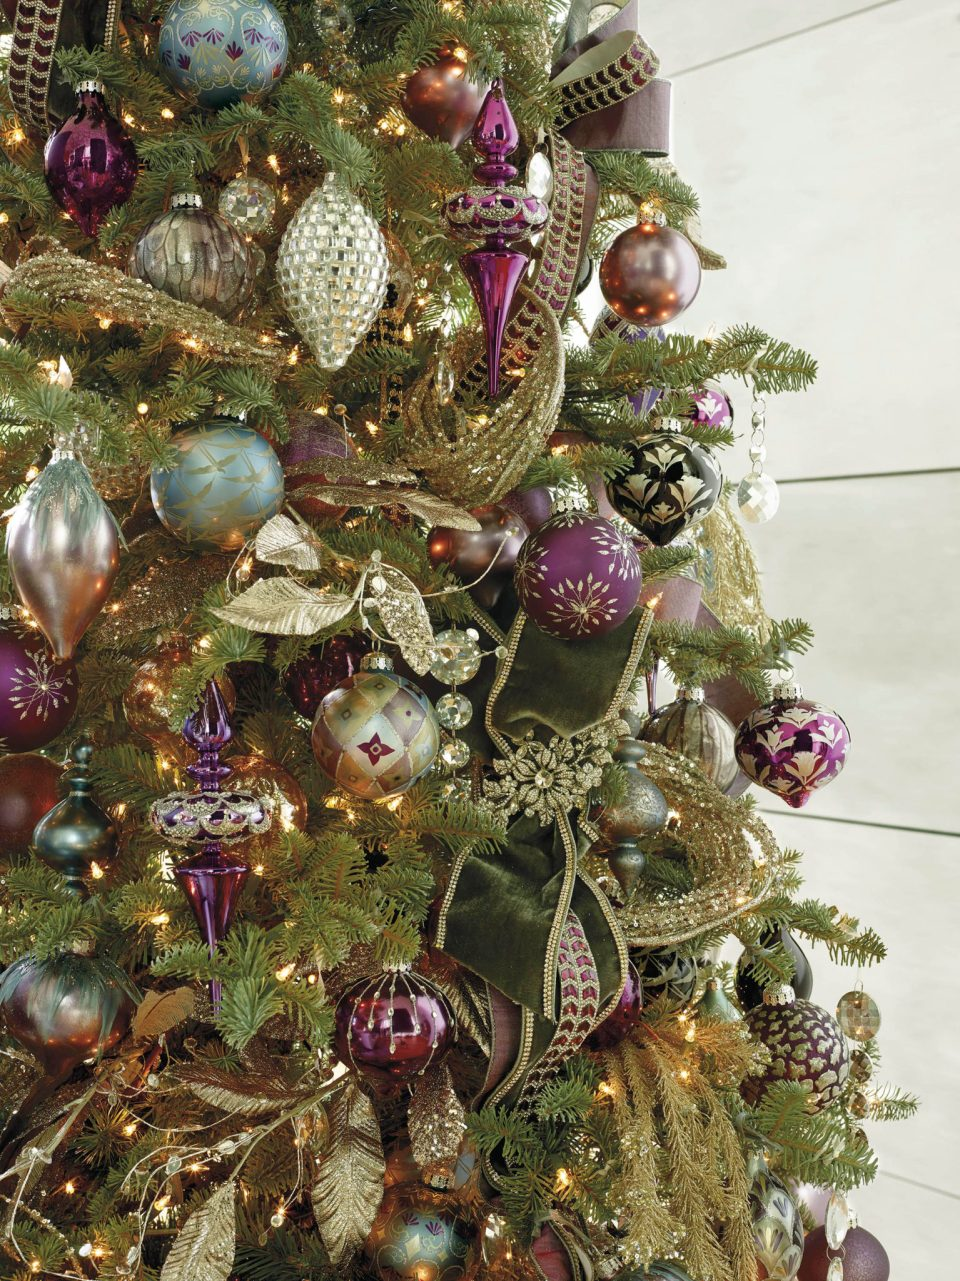 158714_000-960x1281 Holiday Ornaments We Love and How to Store Your Holiday Decor